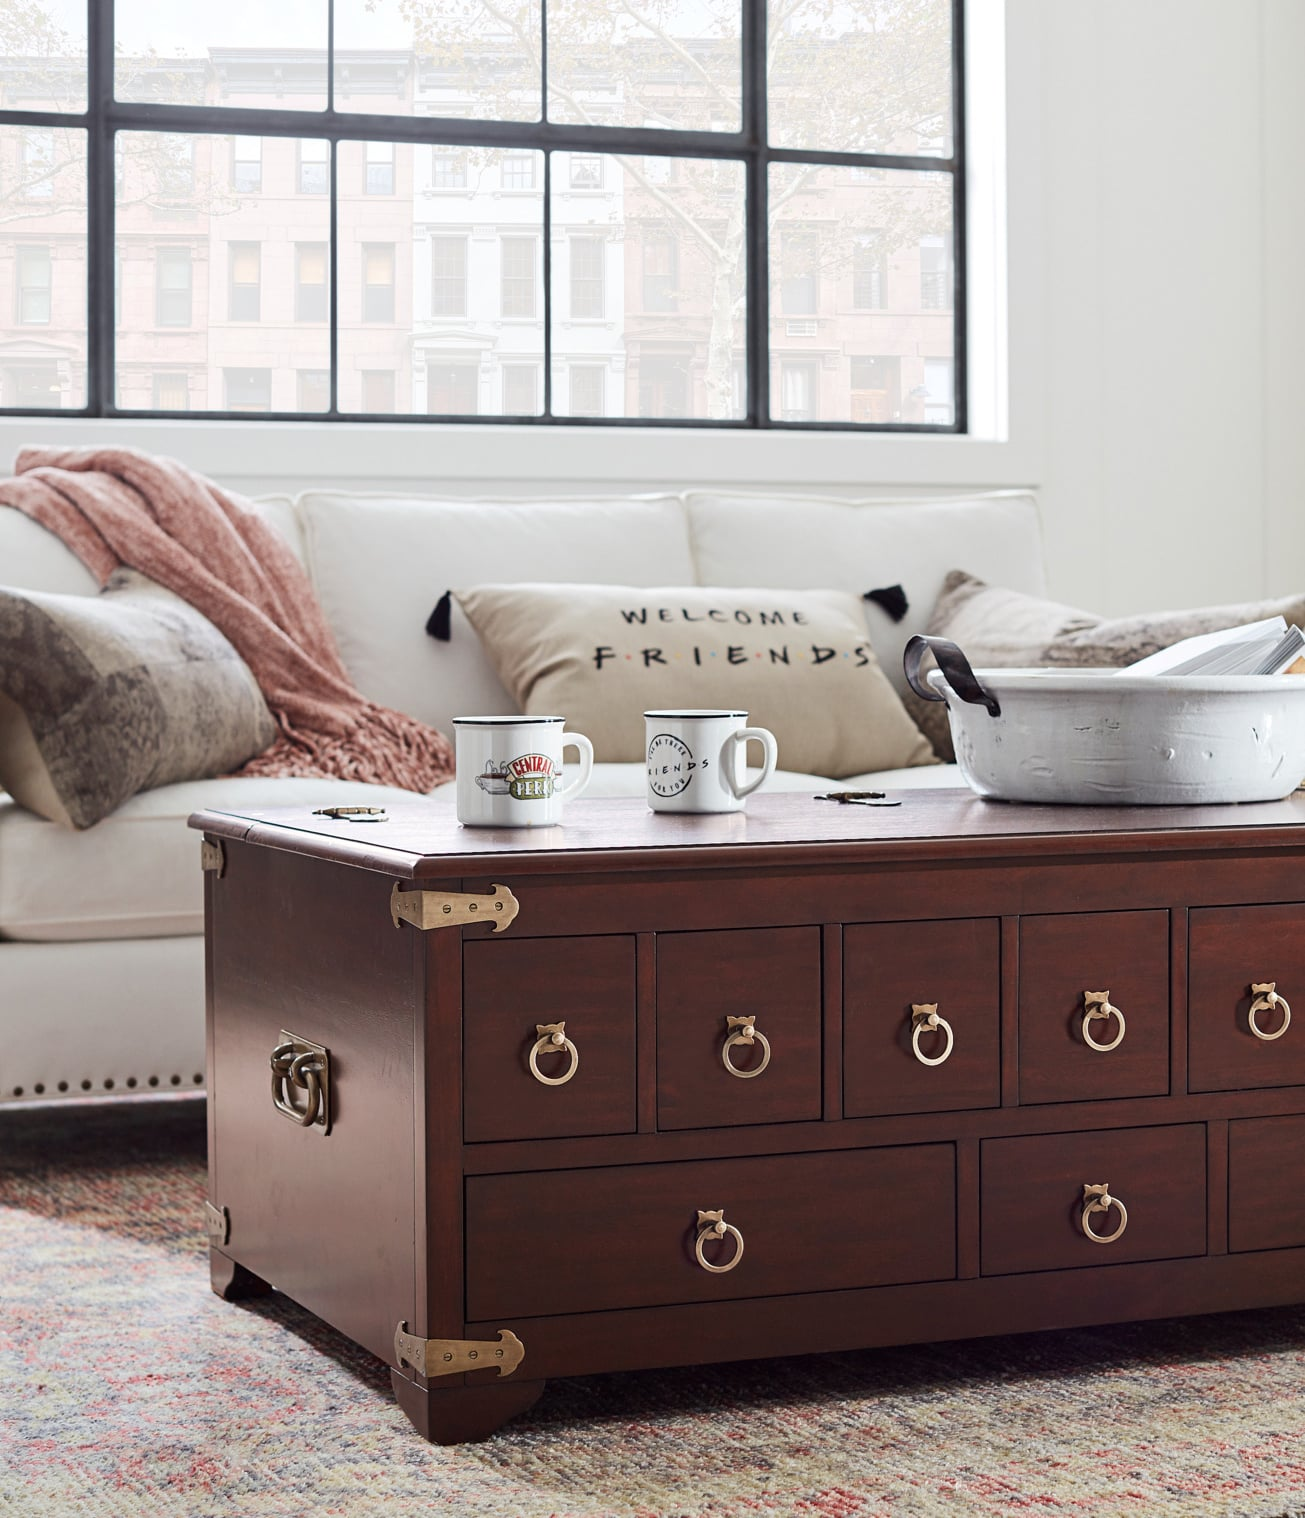 Pottery Barn Friends Collection  POPSUGAR Home